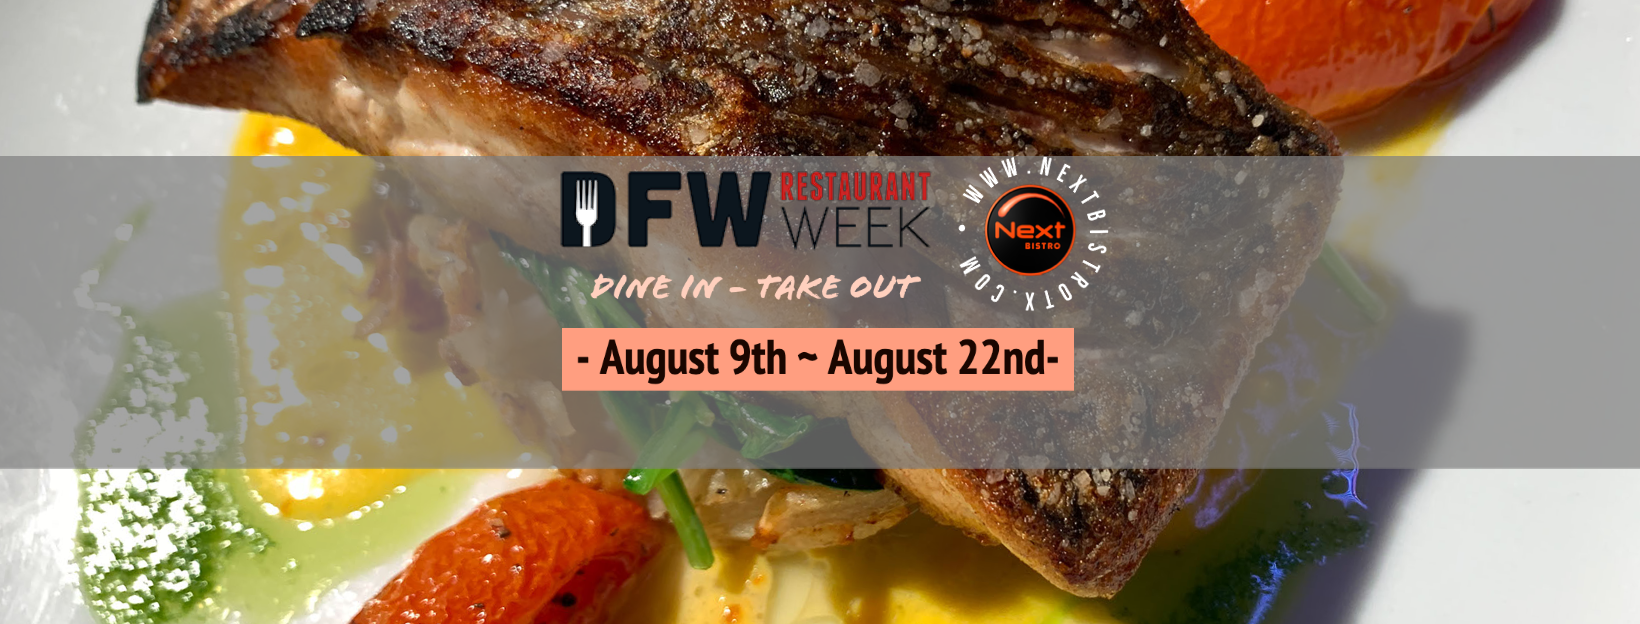 DFWRestWeekfbcover.png